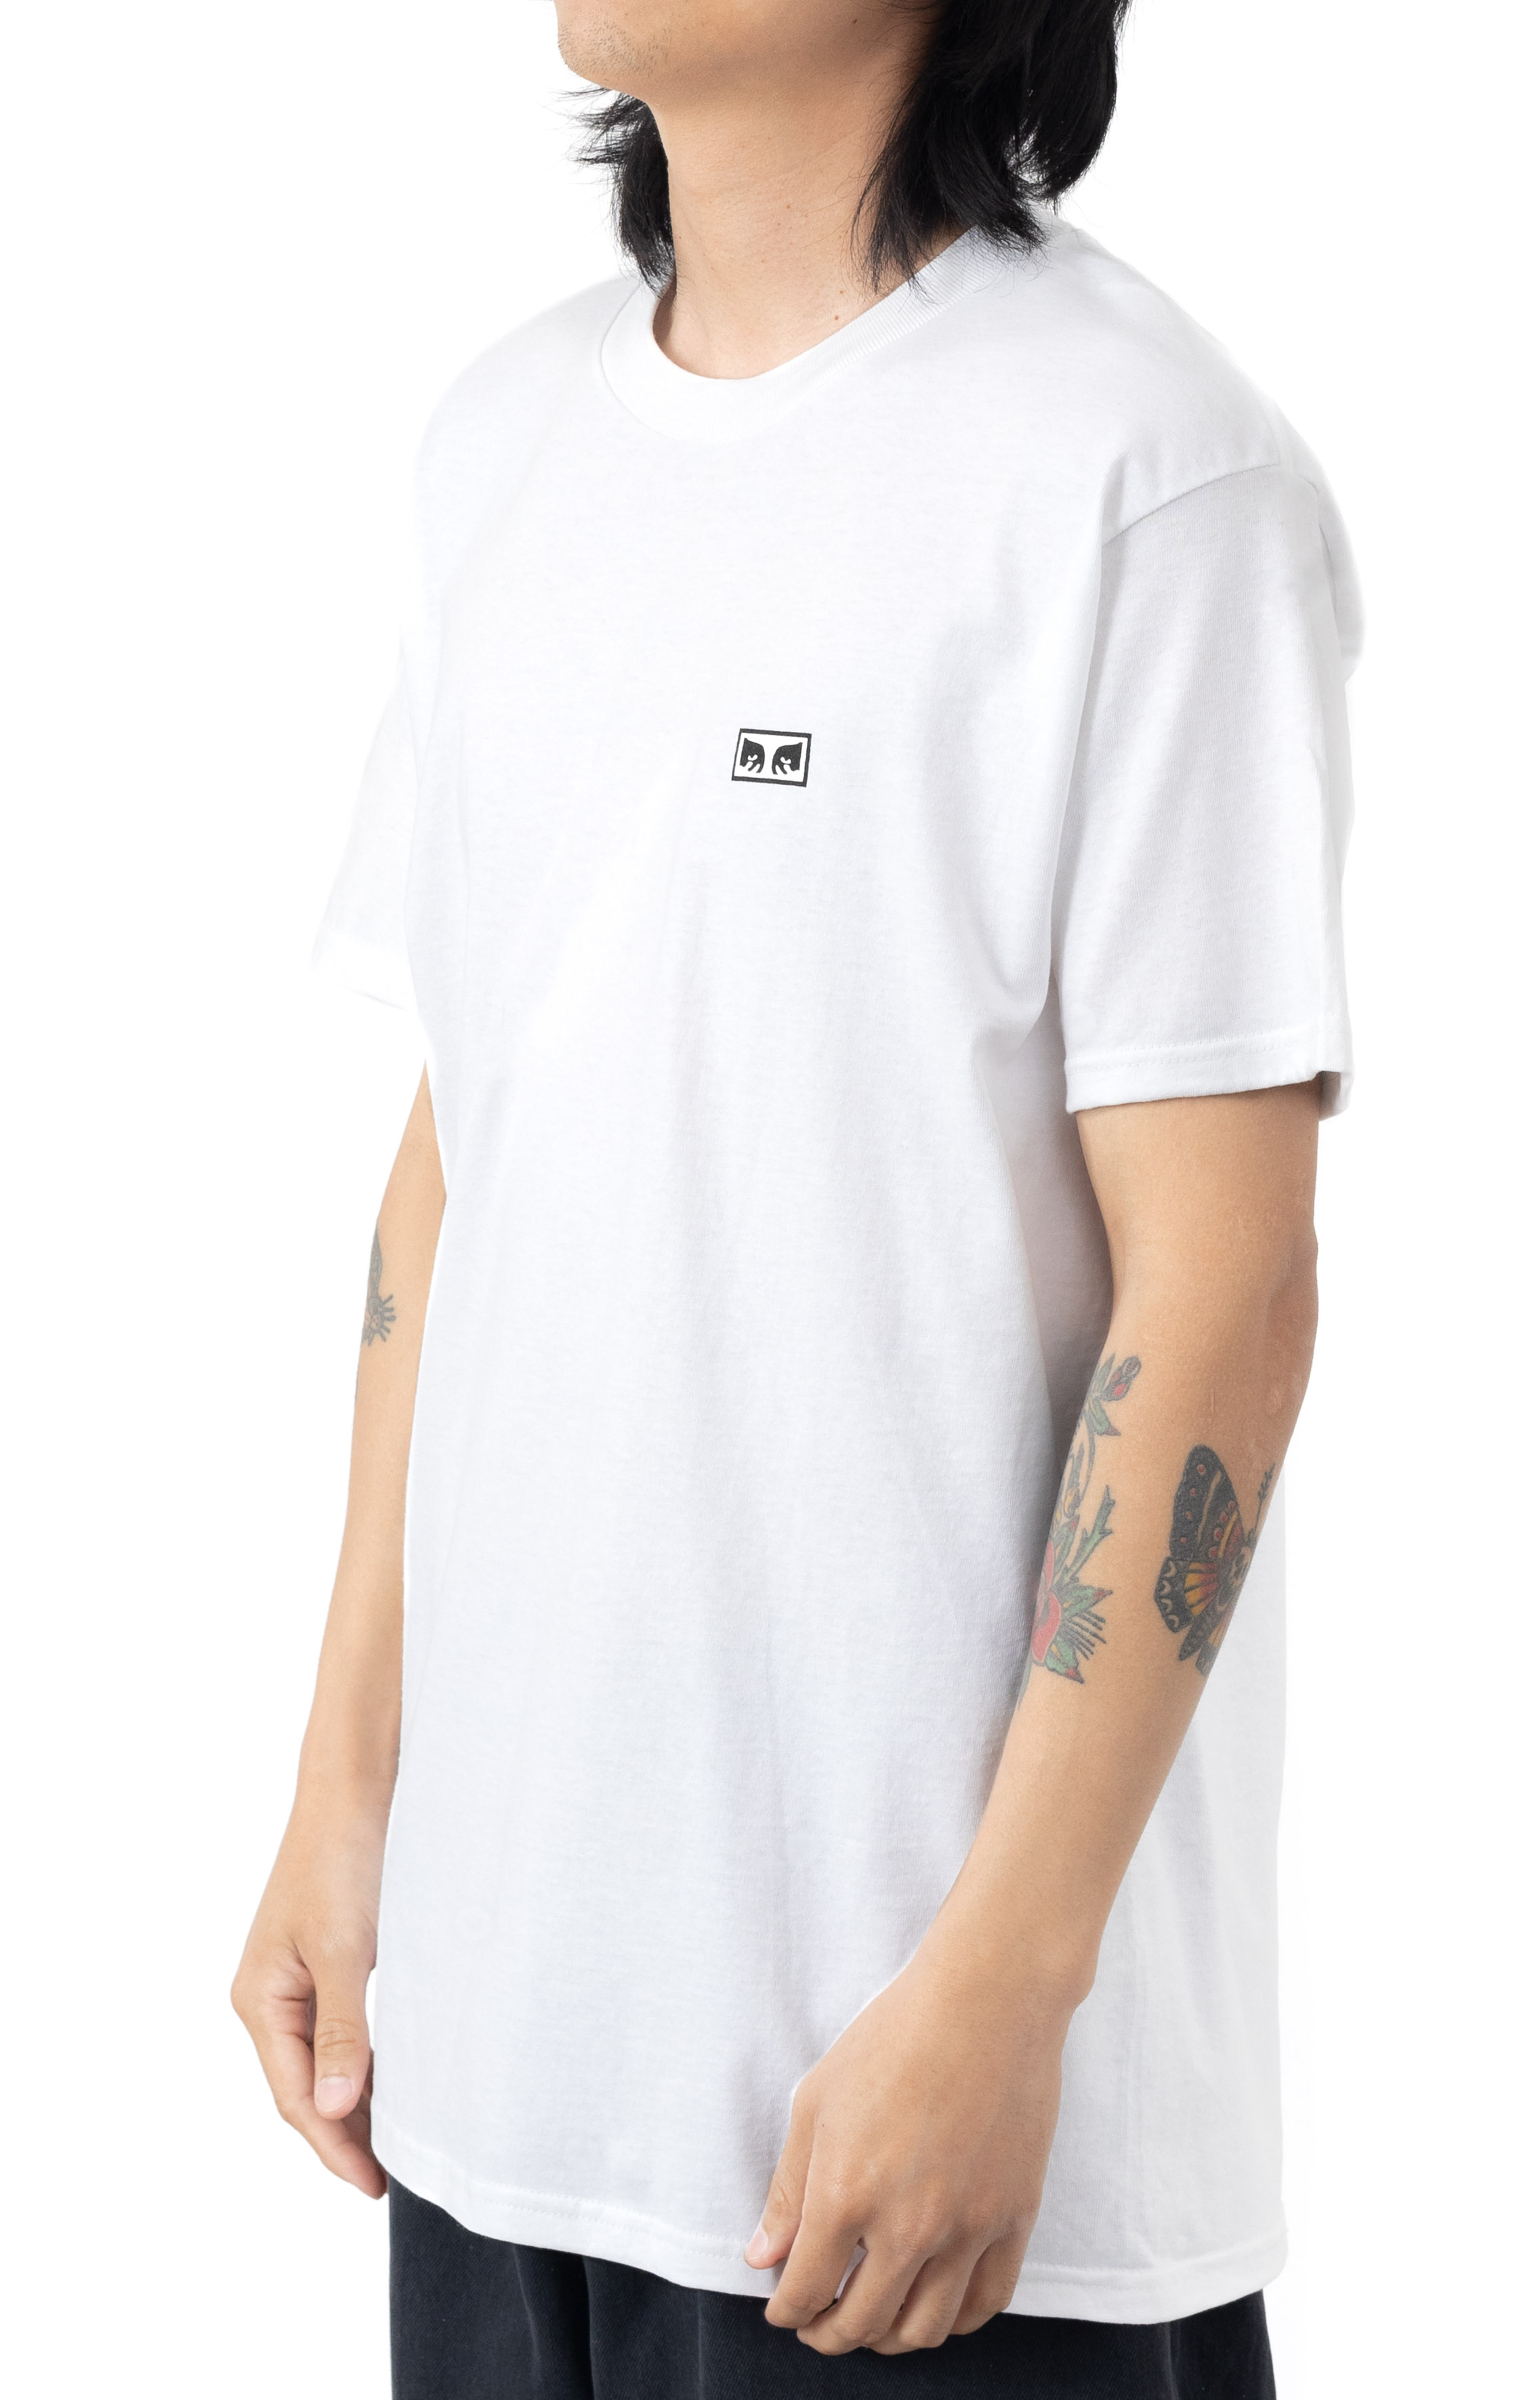 Be Kind T-Shirt - White  3